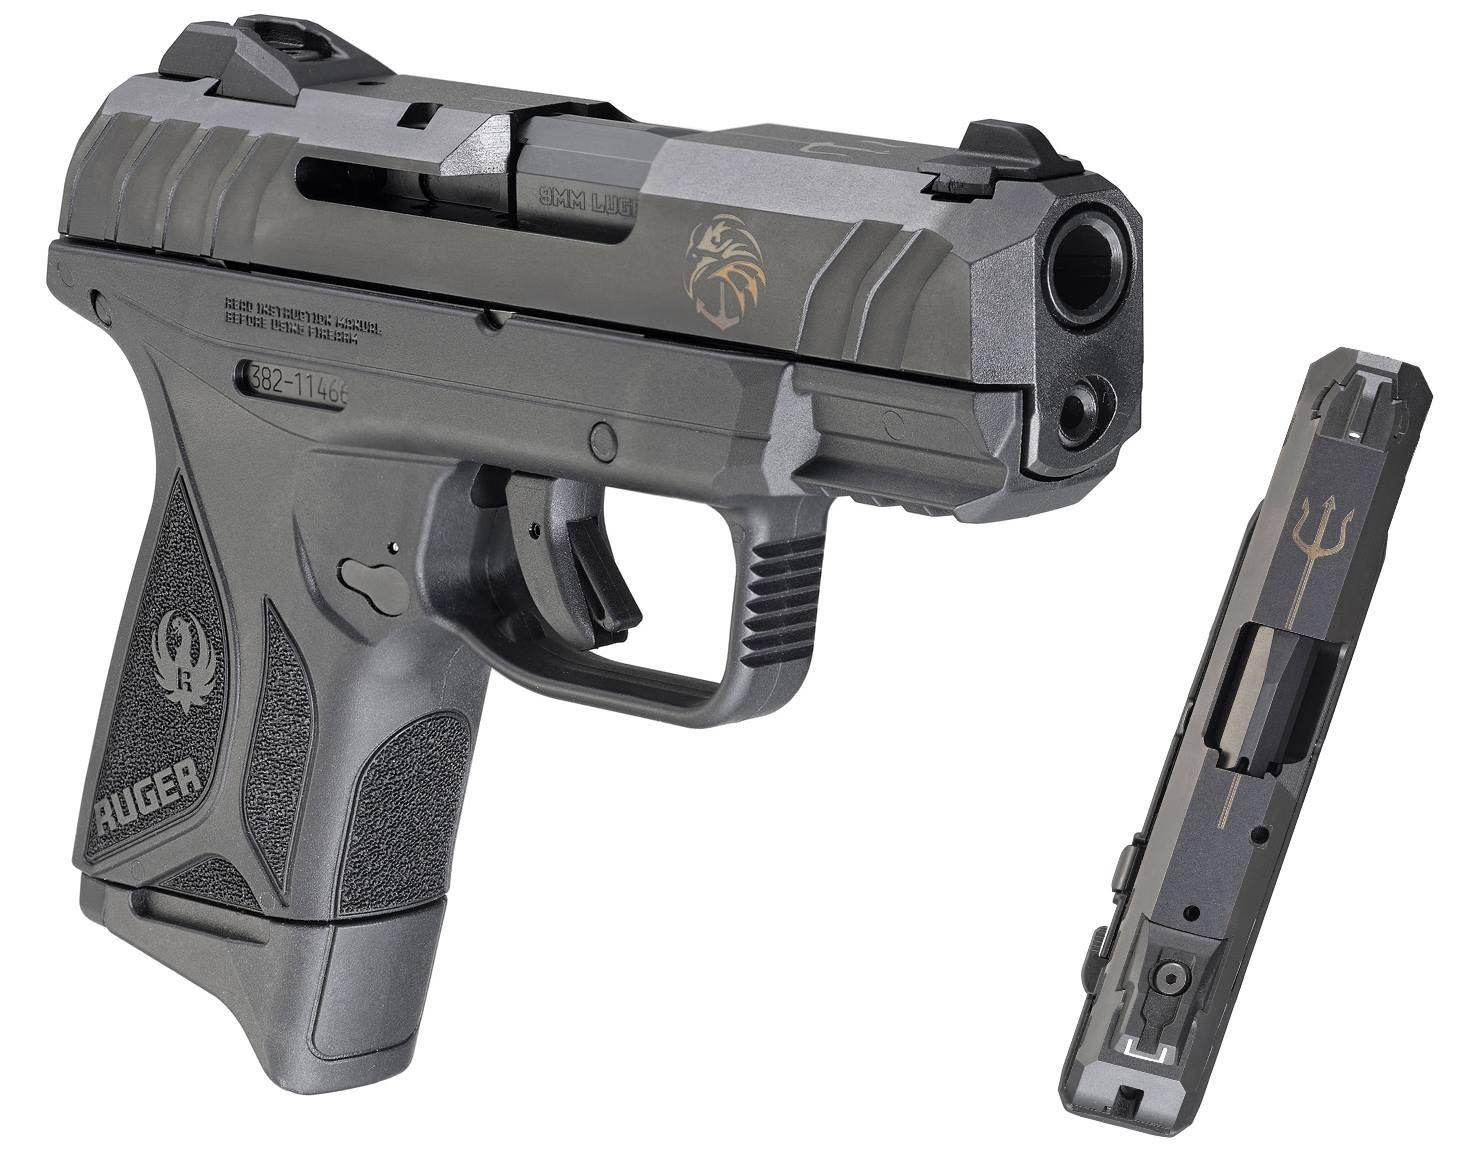 SECURITY-9 CMPCT 9MM NSF BLK - 3828 | NAVY SEAL FOUNDATION